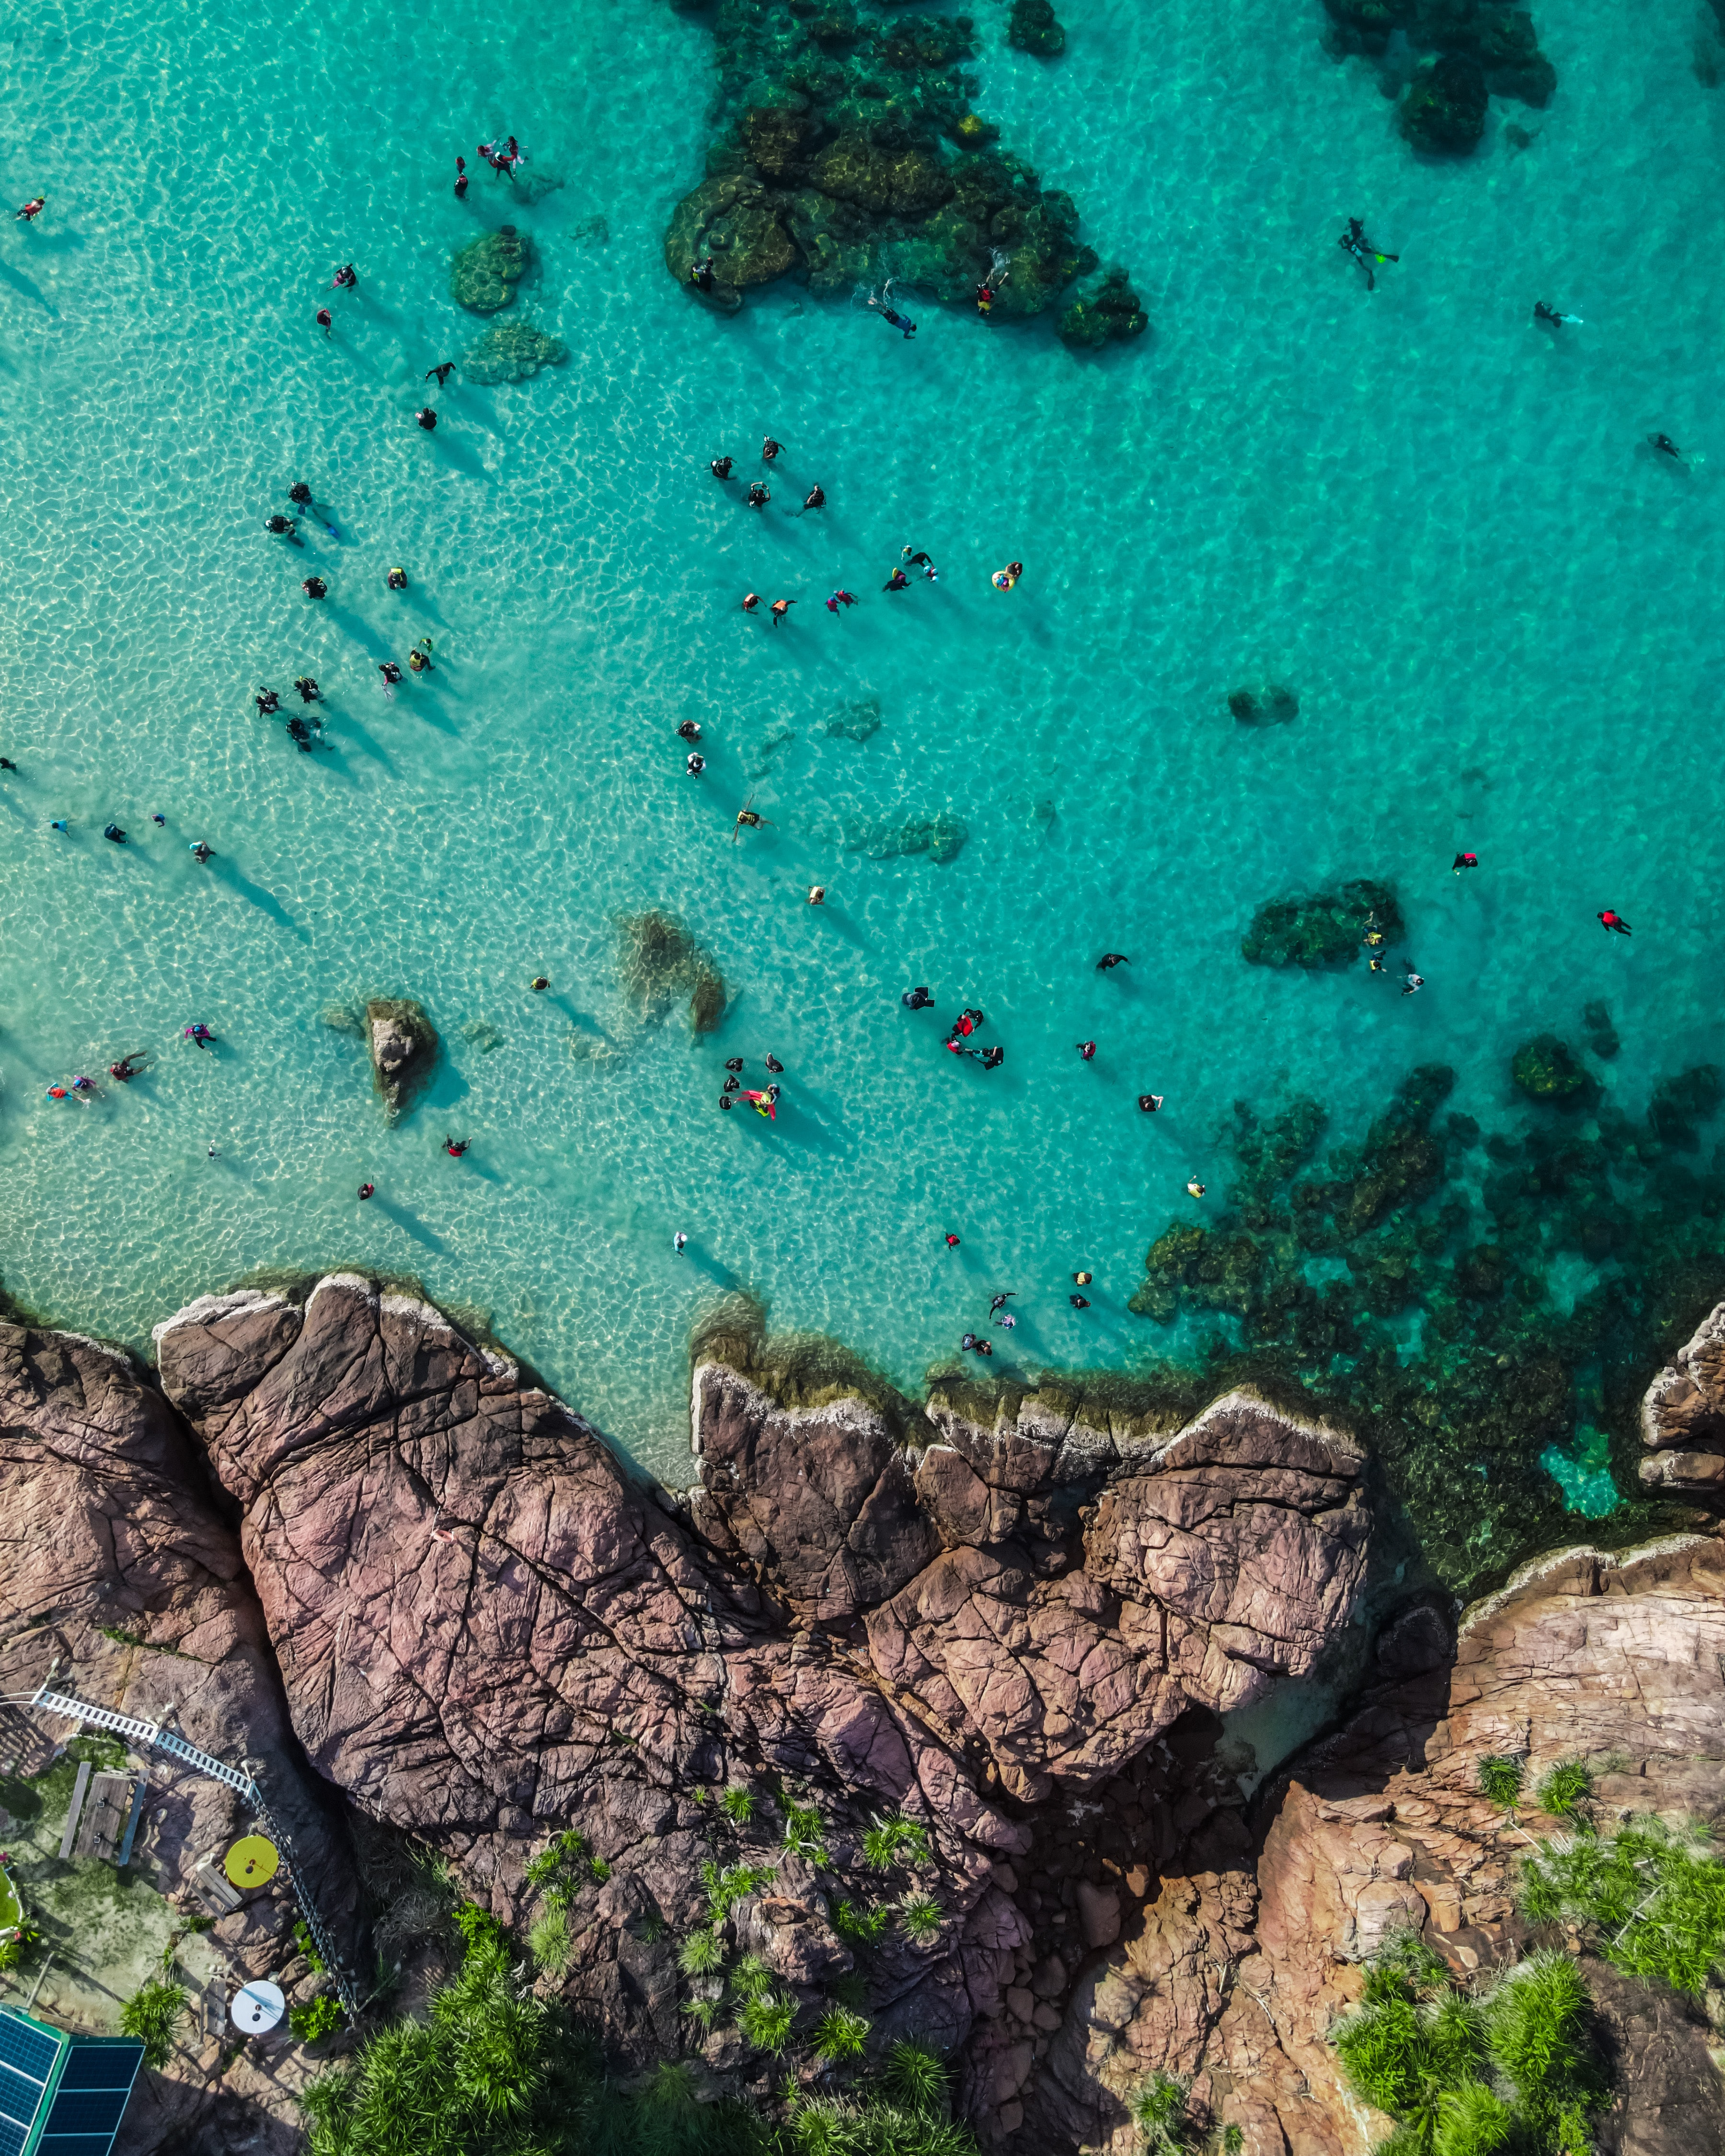 80101 download wallpaper People, Nature, Sea, Rocks, View From Above, Coast screensavers and pictures for free